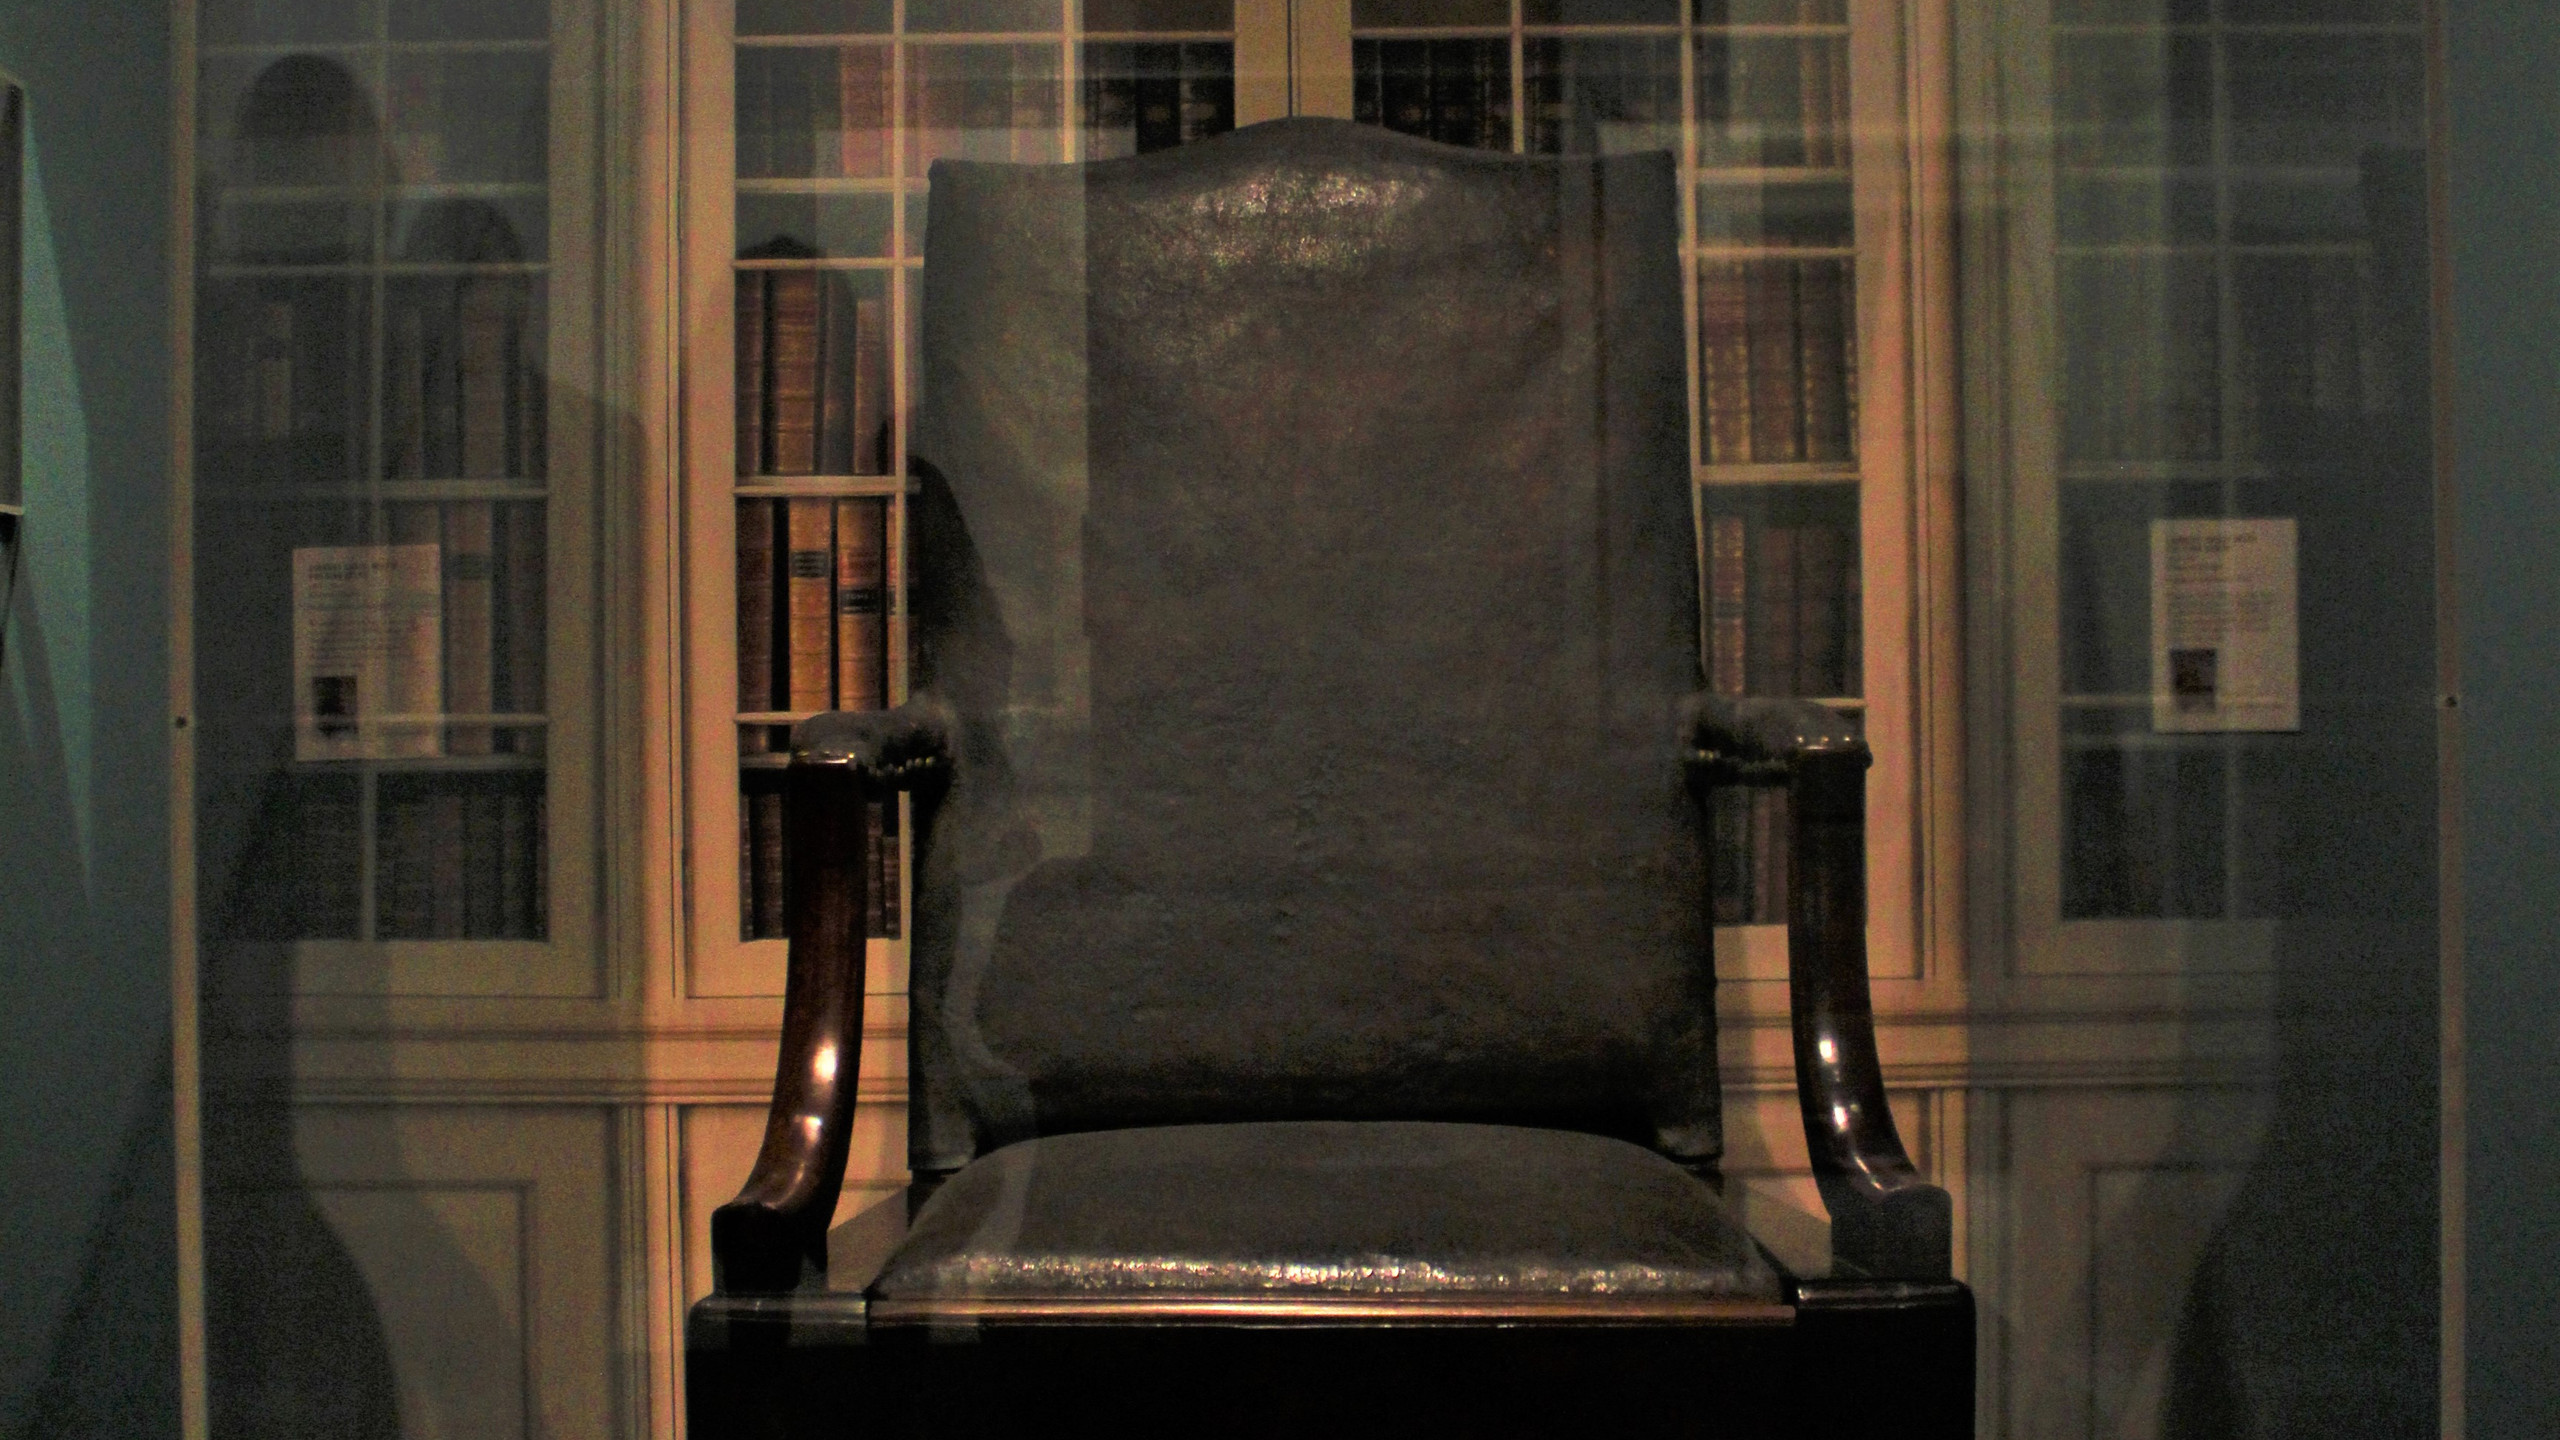 Benjamin Franklin's Chair